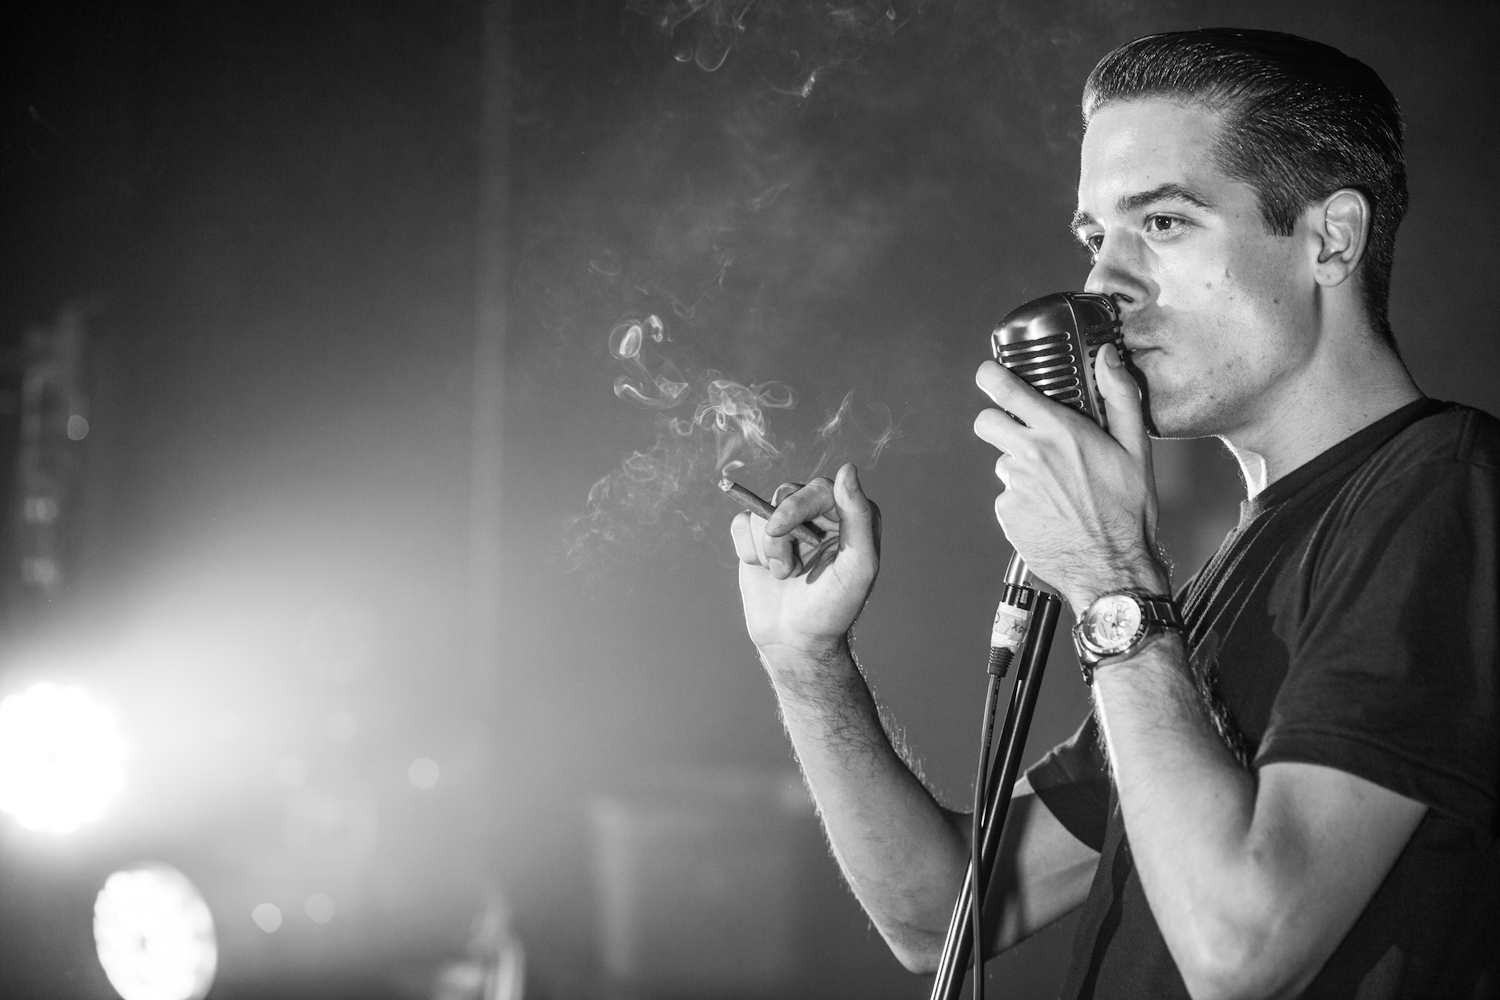 Wonderful G Eazy Wallpaper Full HD Pictures 1500x1000